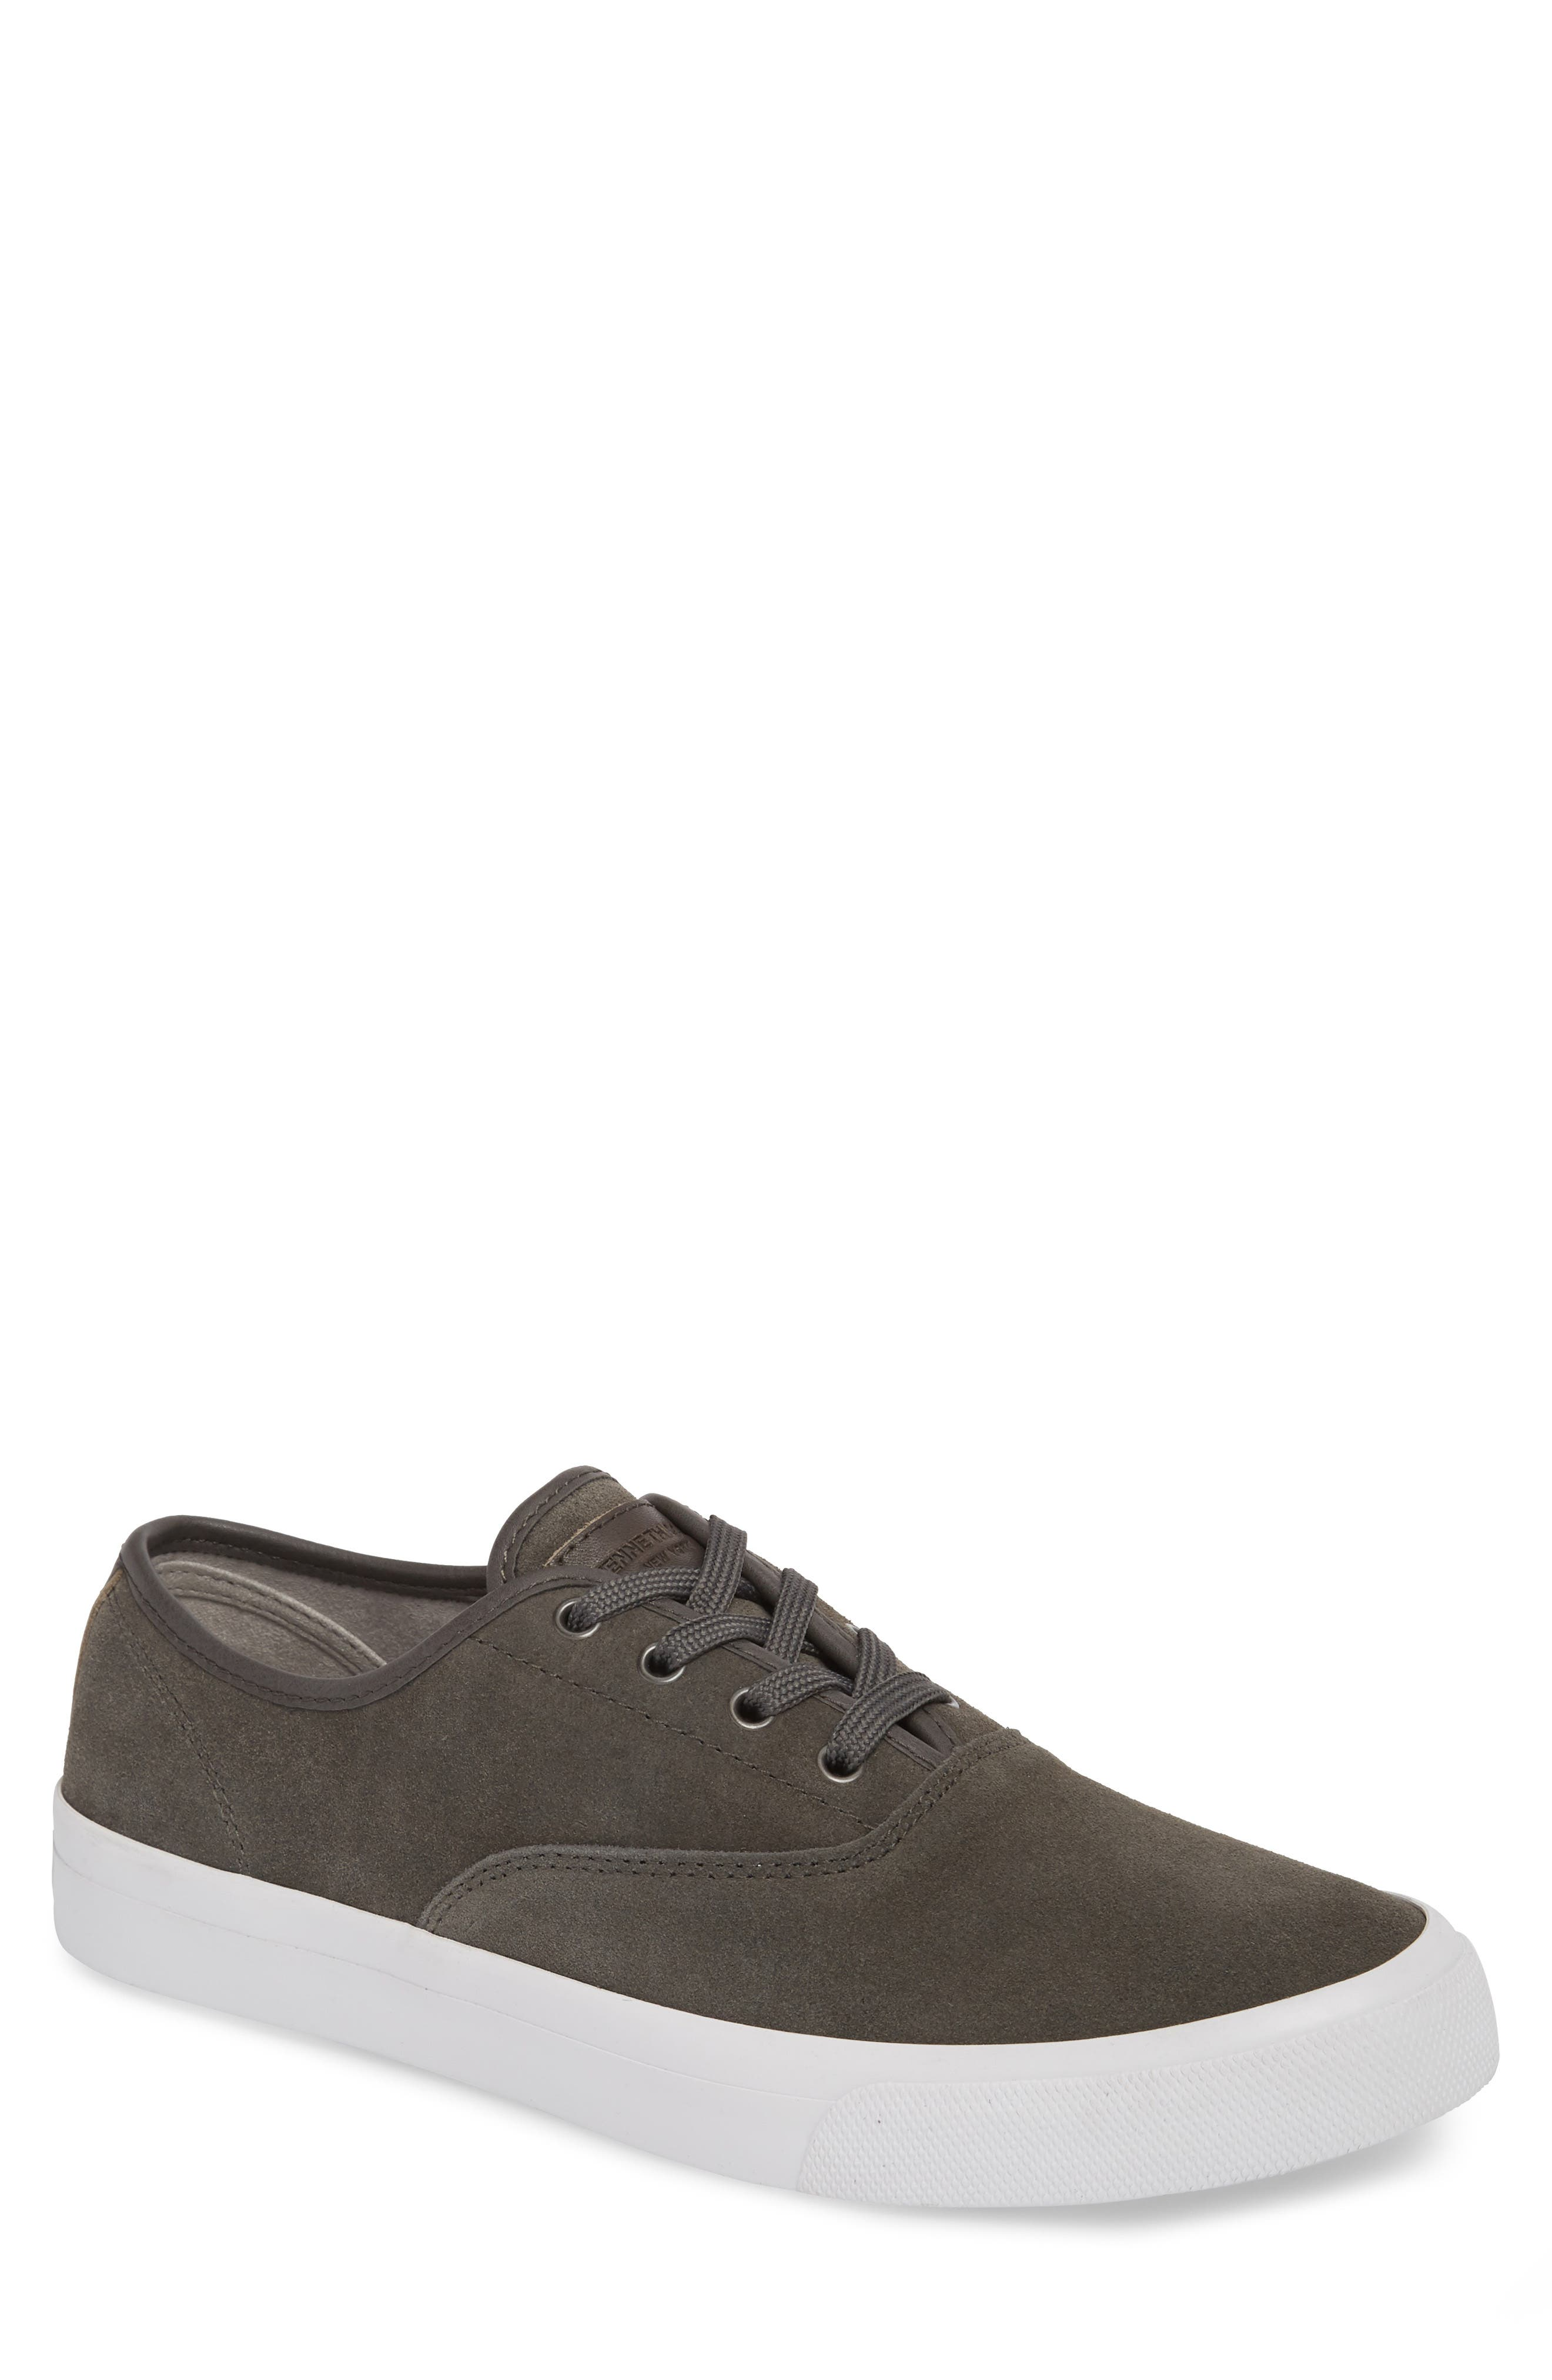 Toor Low Top Sneaker,                             Main thumbnail 1, color,                             GREY COMBO SUEDE